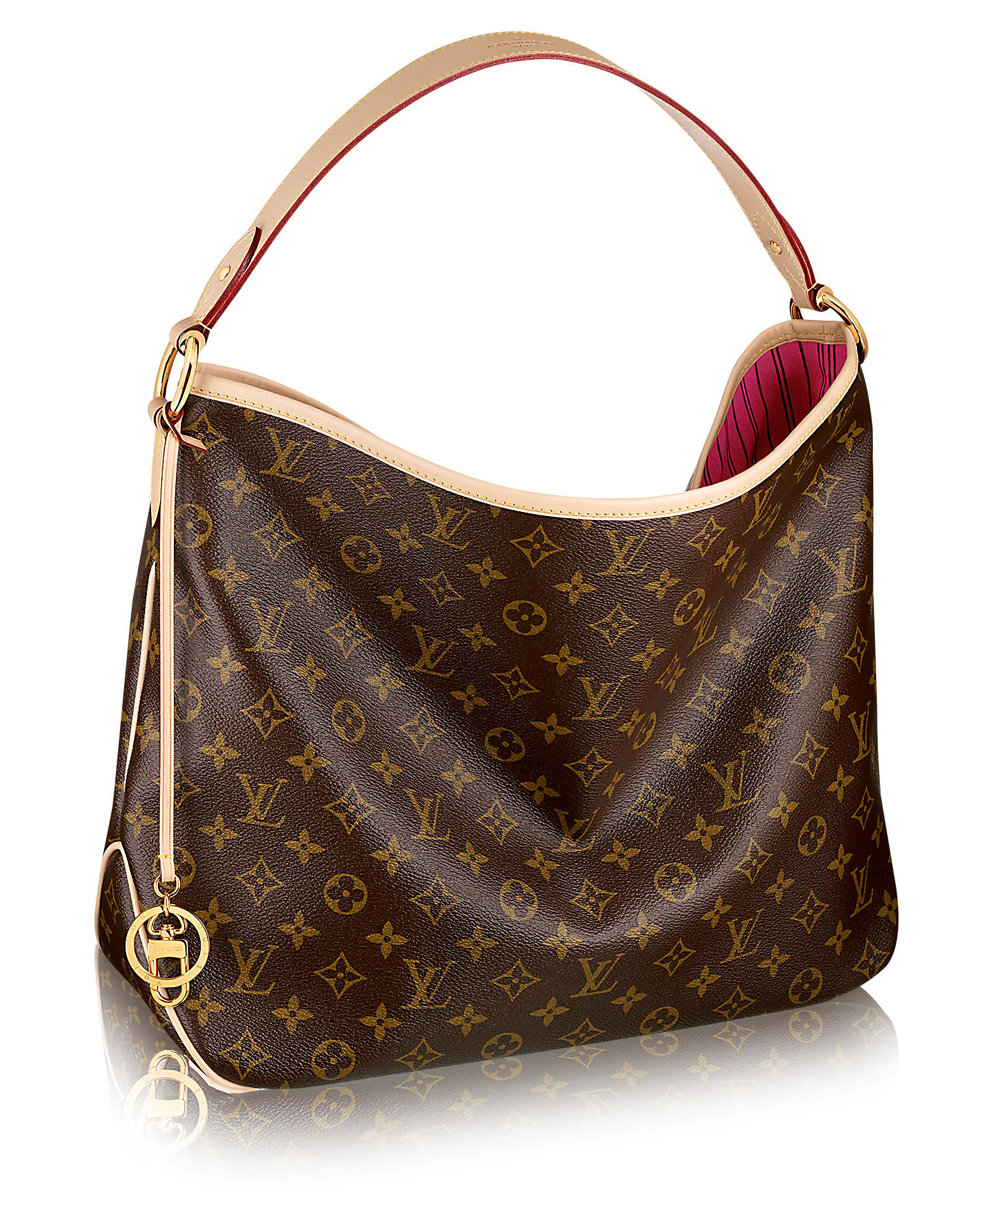 Delightful Monogram MM Handbag, Louis Vuitton, canvas, 2017